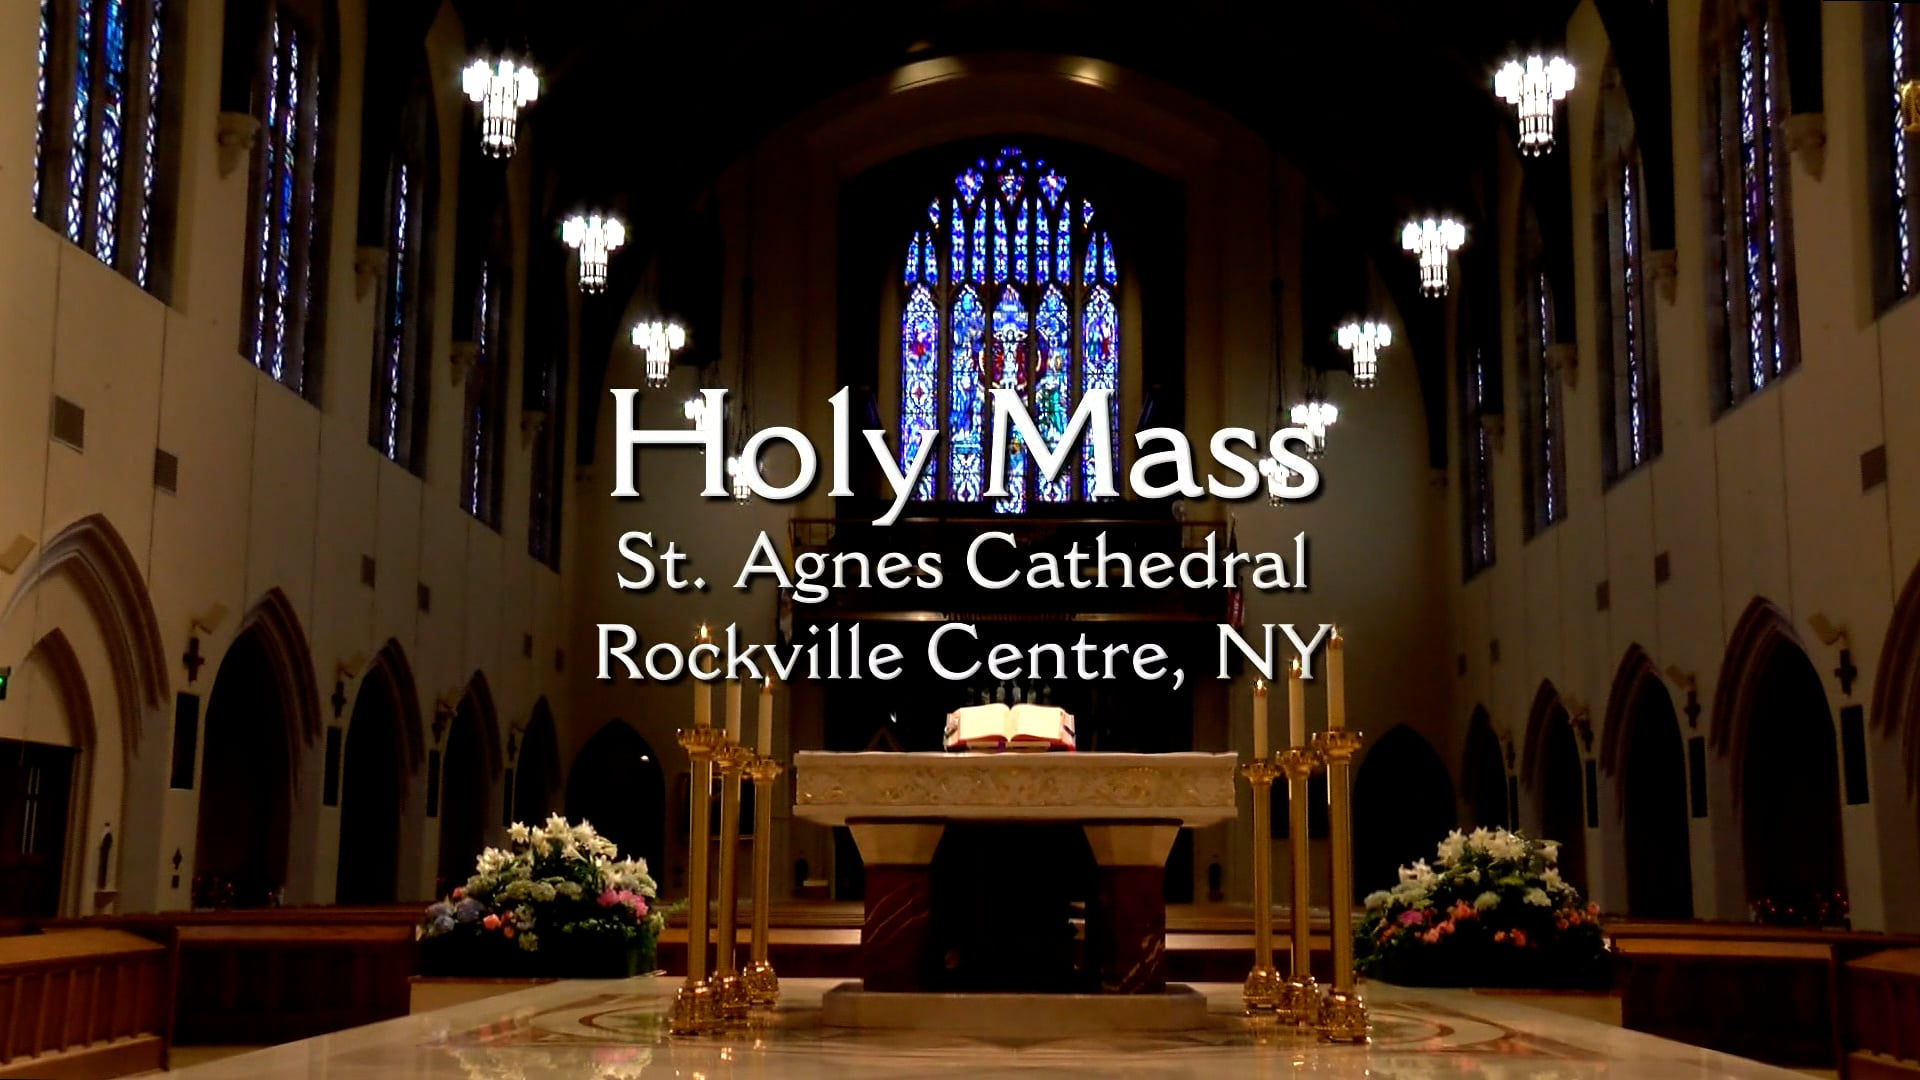 Mass from St. Agnes Cathedral - October 22, 2021